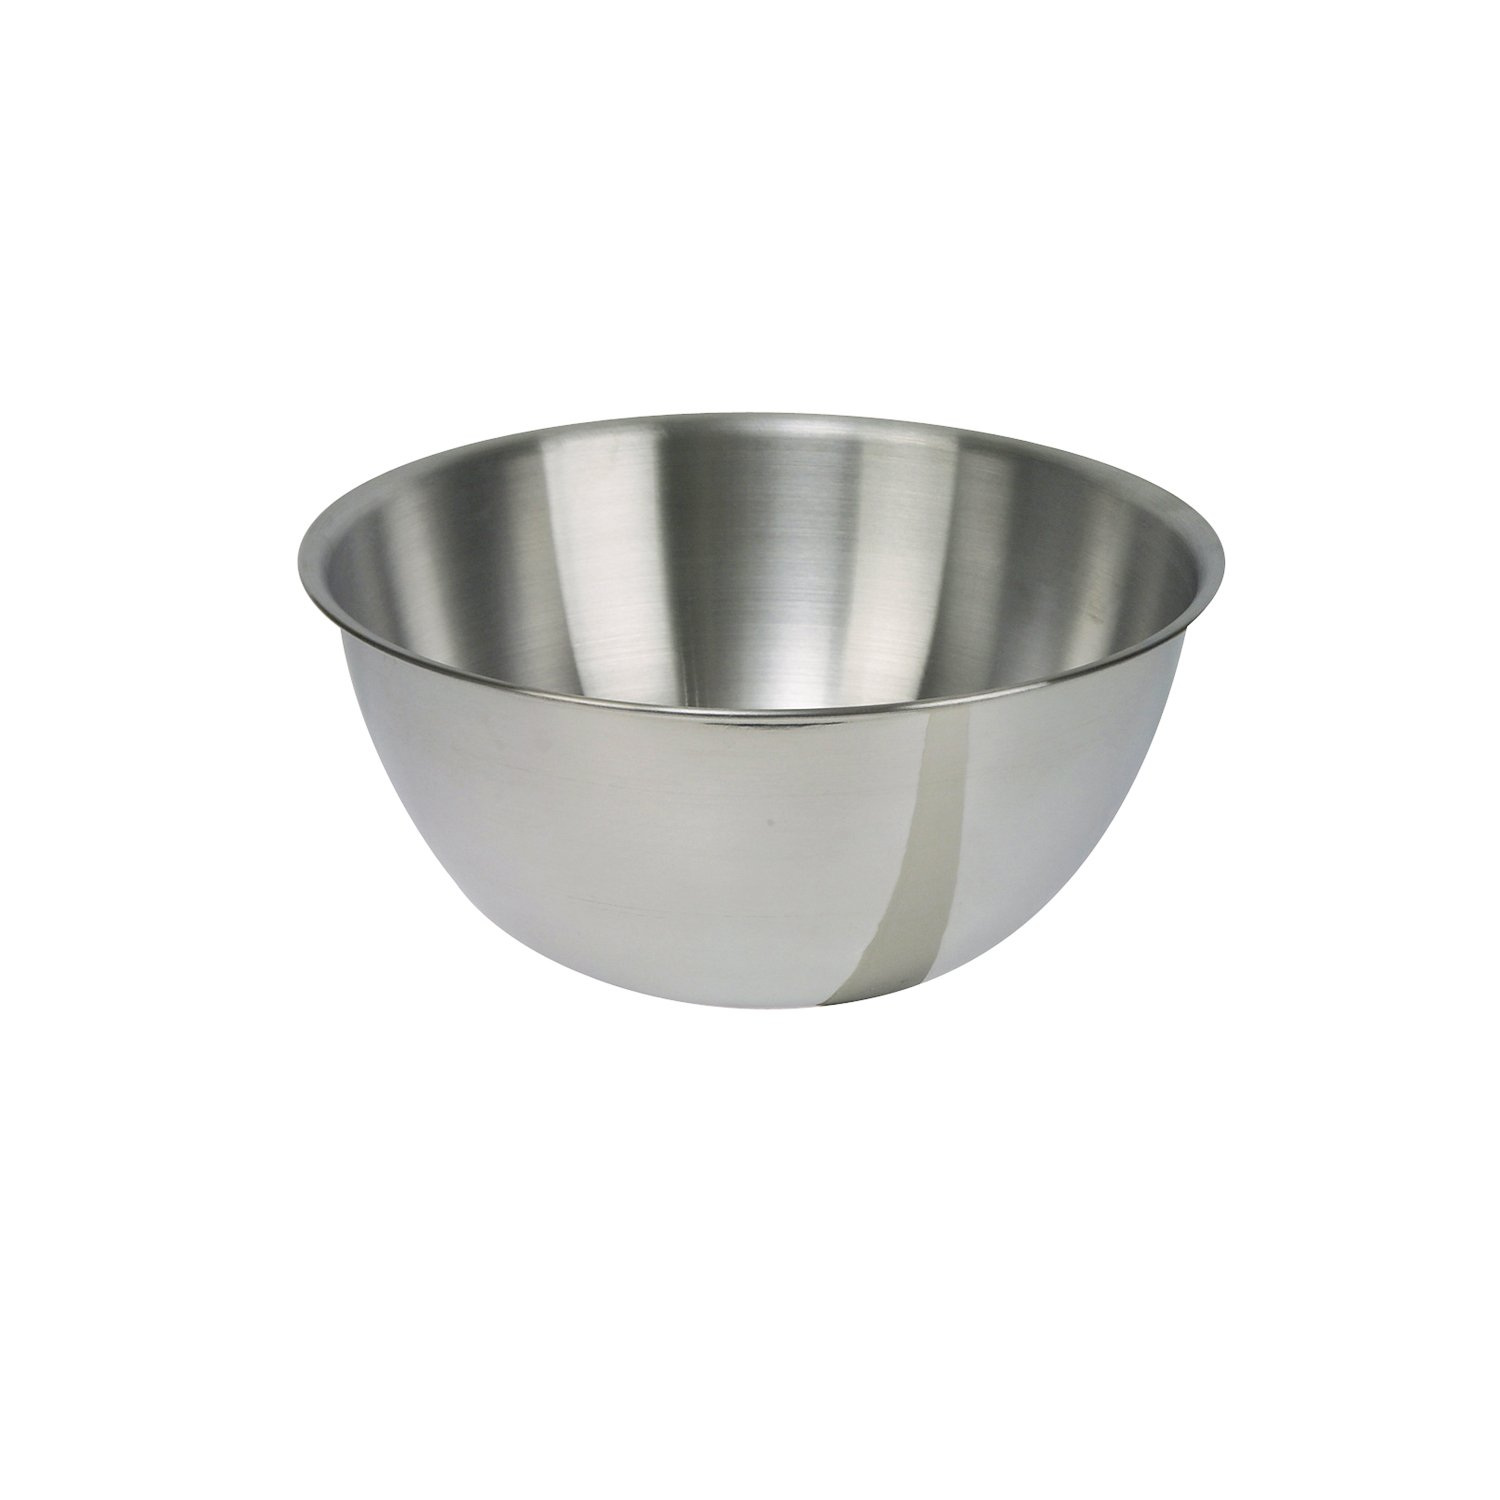 Dexam Stainless Steel mixing bowl, 2.0 Litre BayTree Cookware 17830425 kitchen accessories